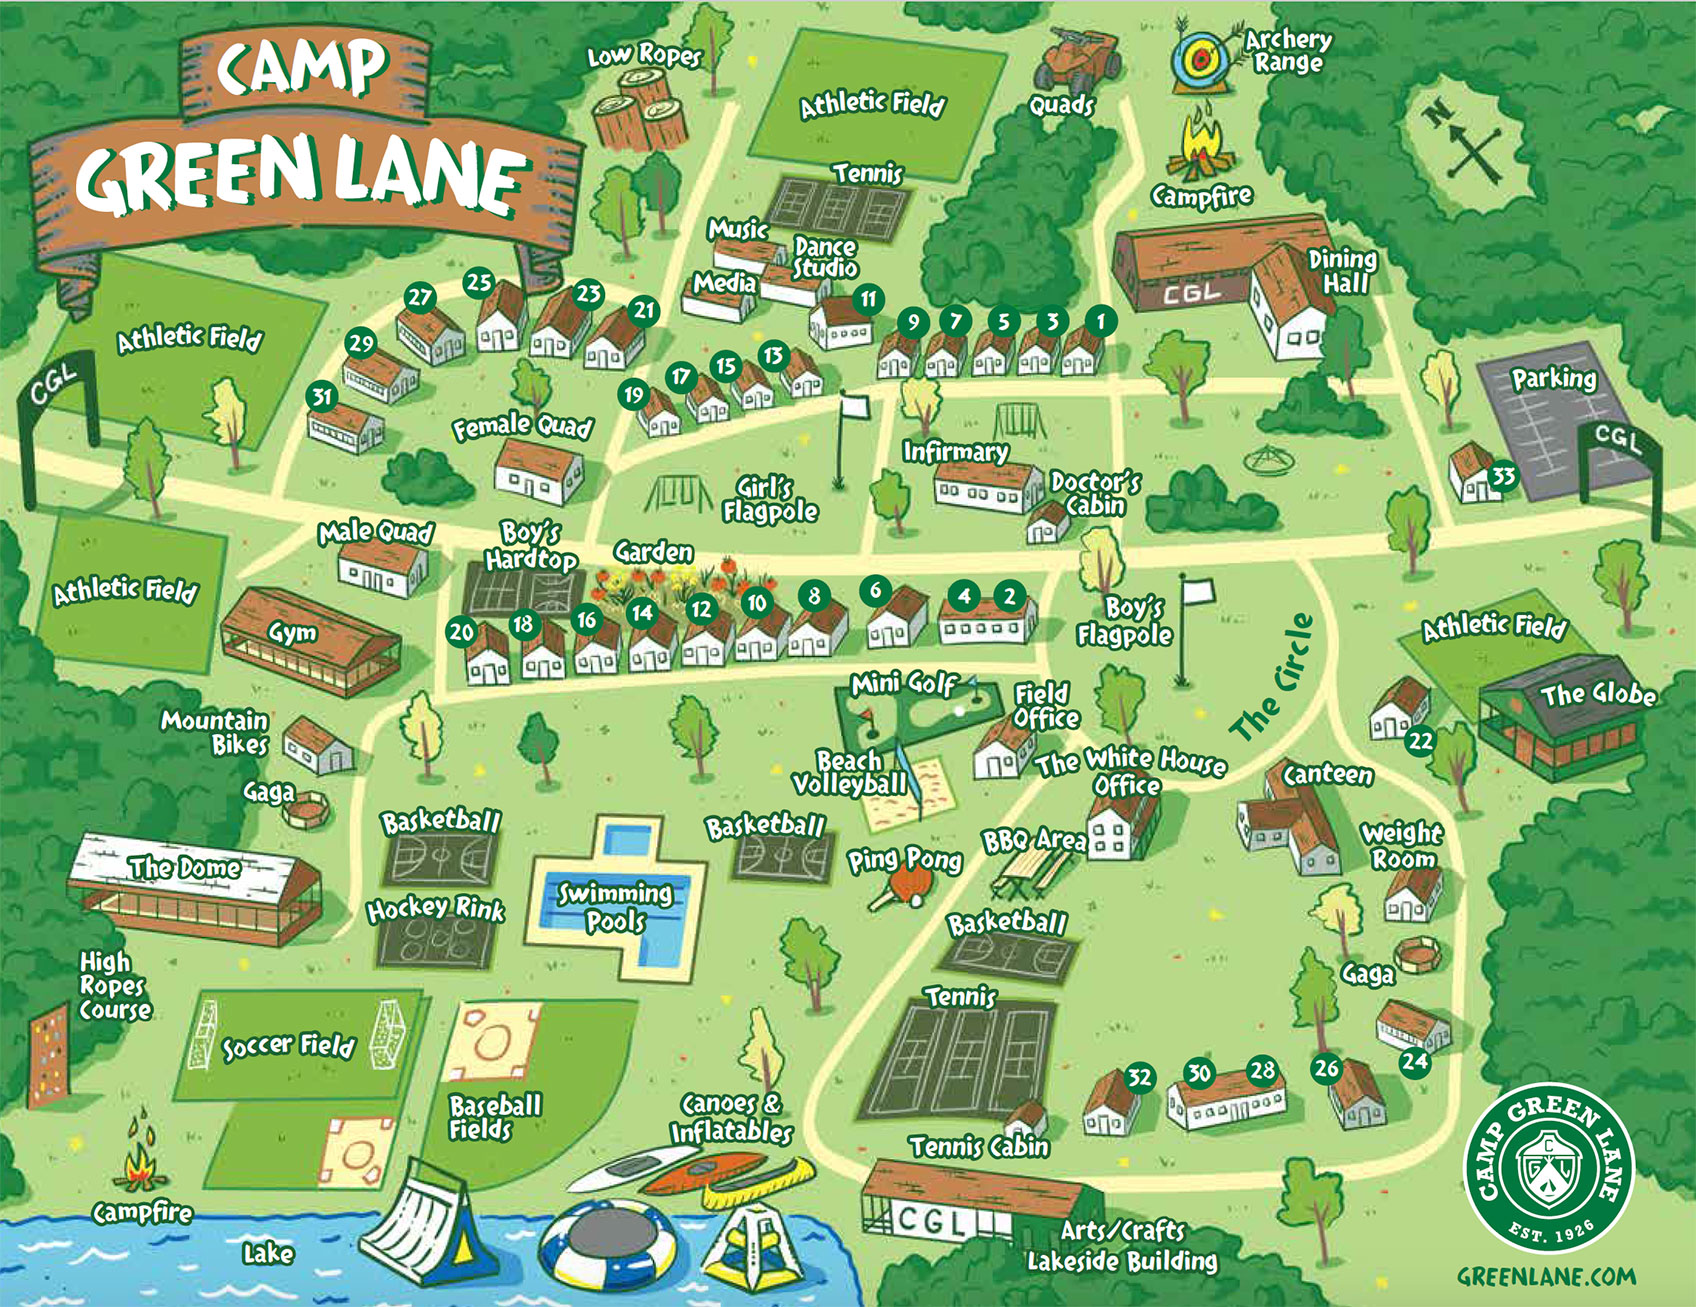 Our campus map